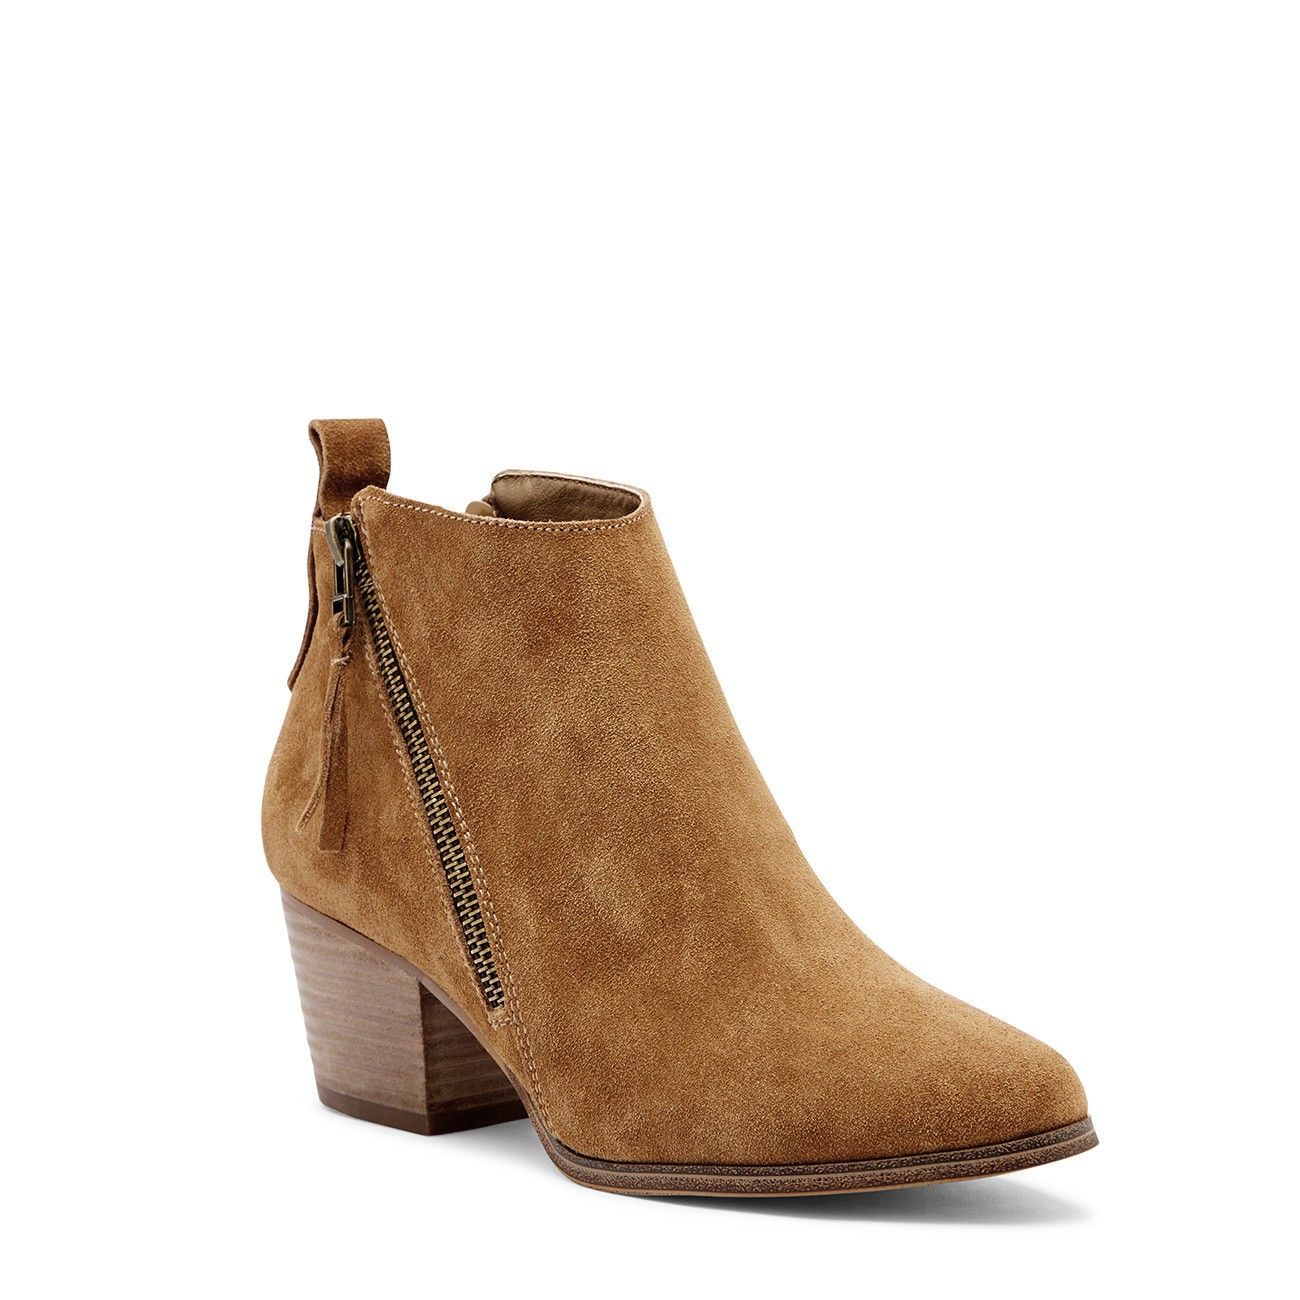 e846d30e839 Sole Society - Women's Shoes at Surprisingly Affordable Prices ...